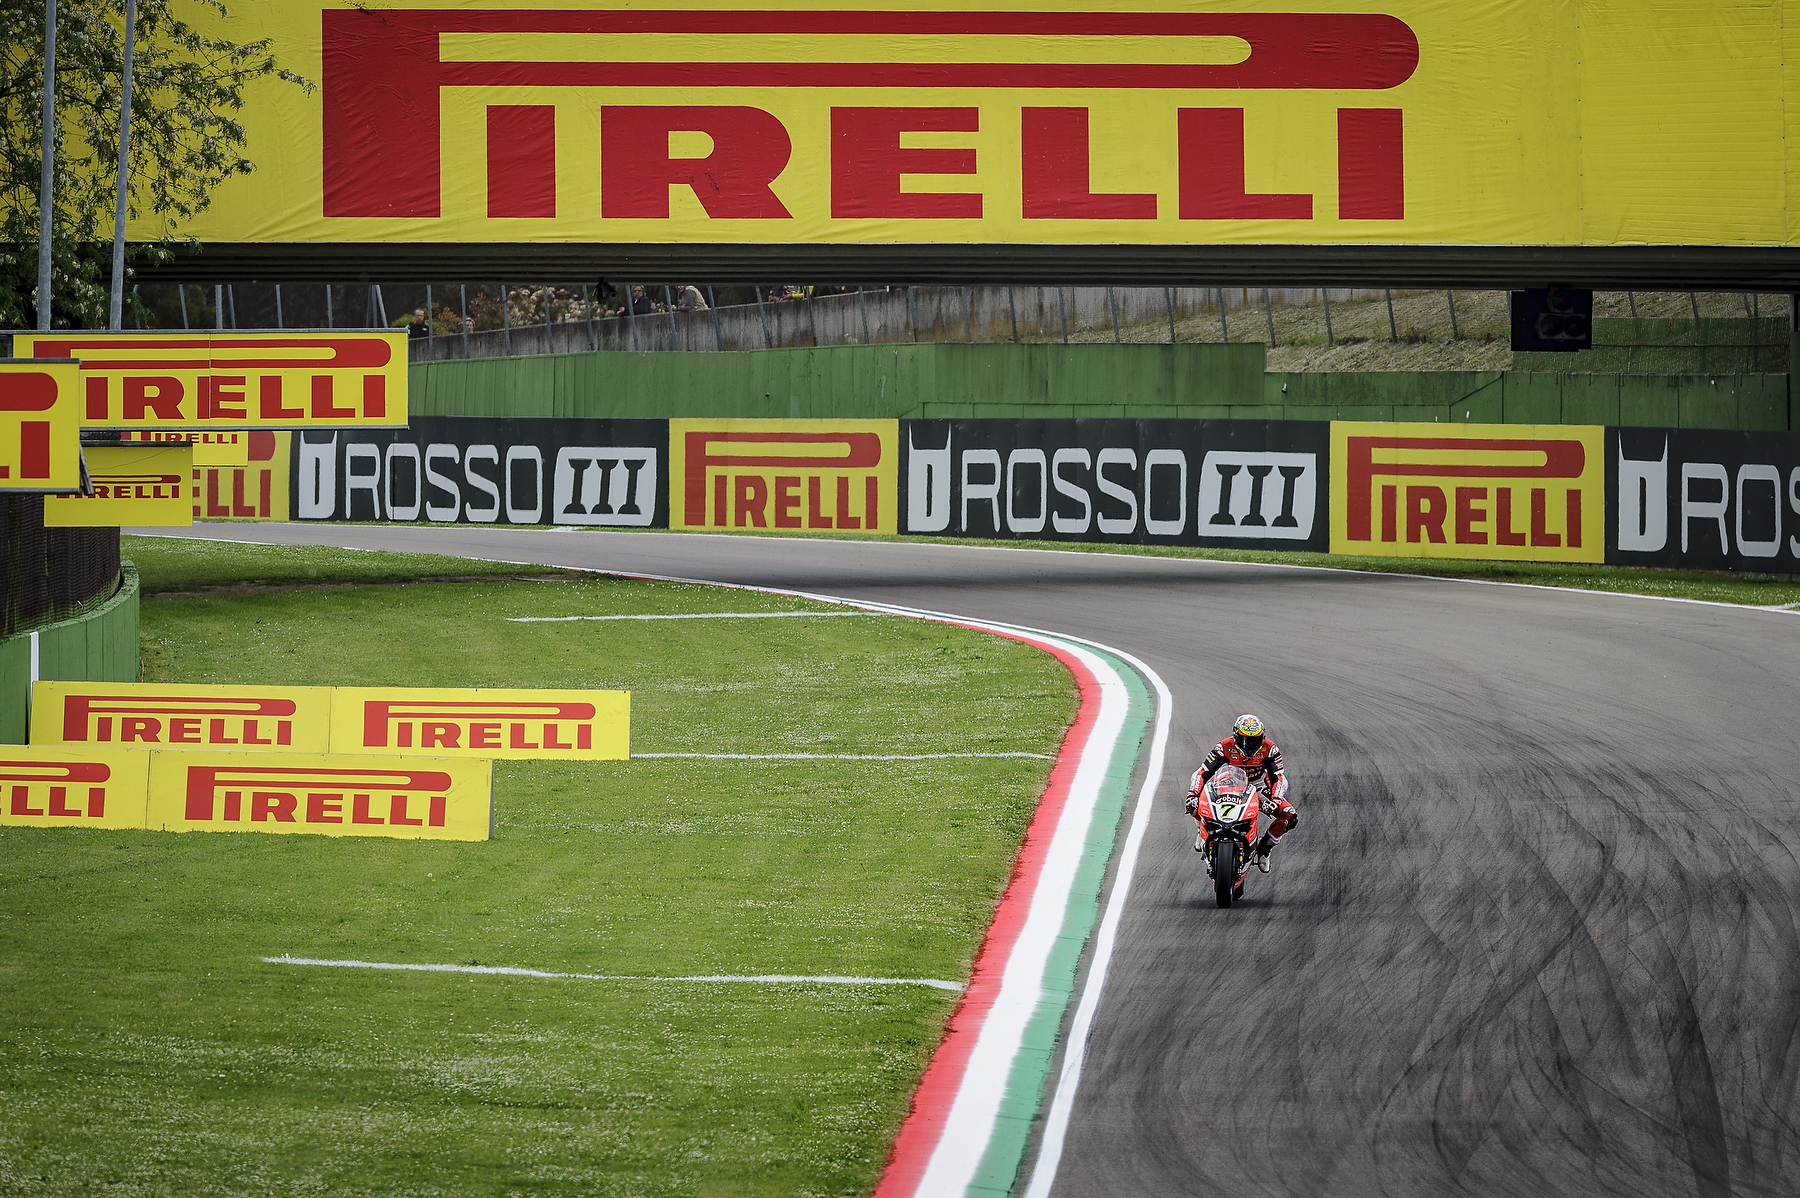 005_R05_Imola_gallery